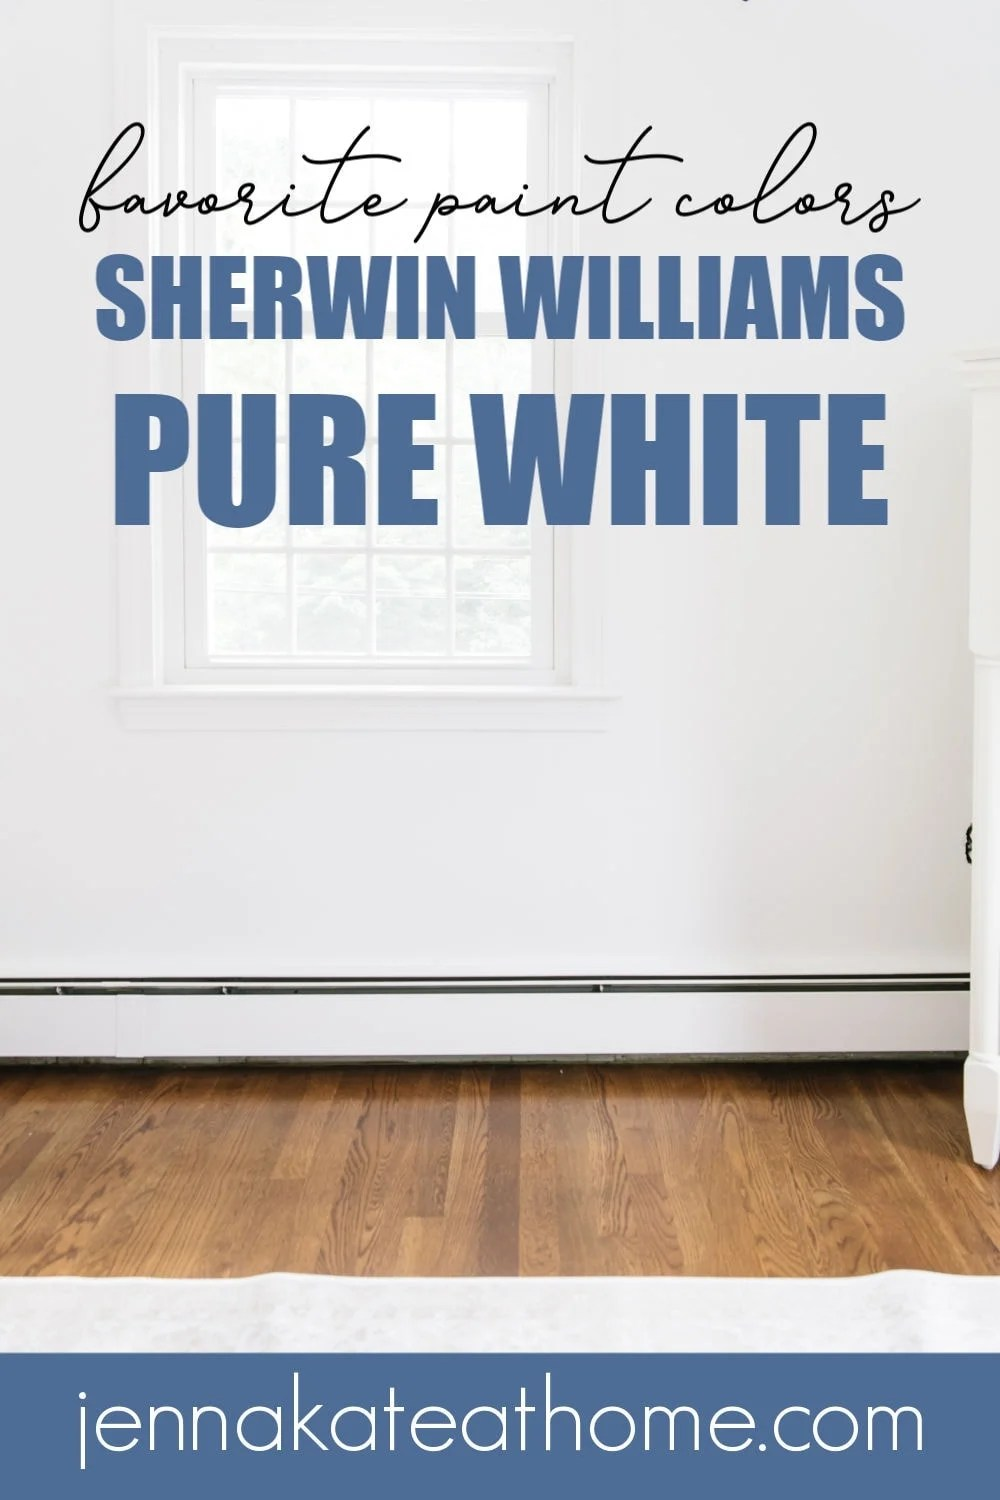 Sherwin Williams Pure White walls